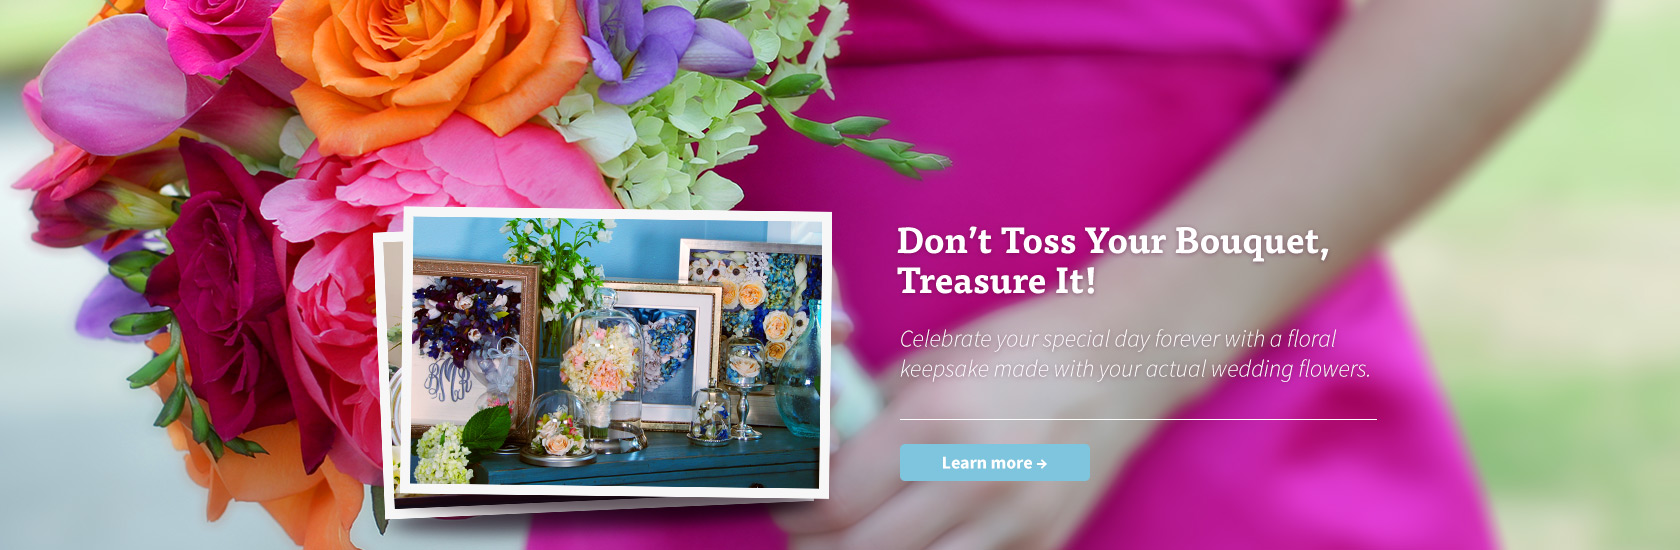 Don't Toss Your Bouquet, Treasure It!